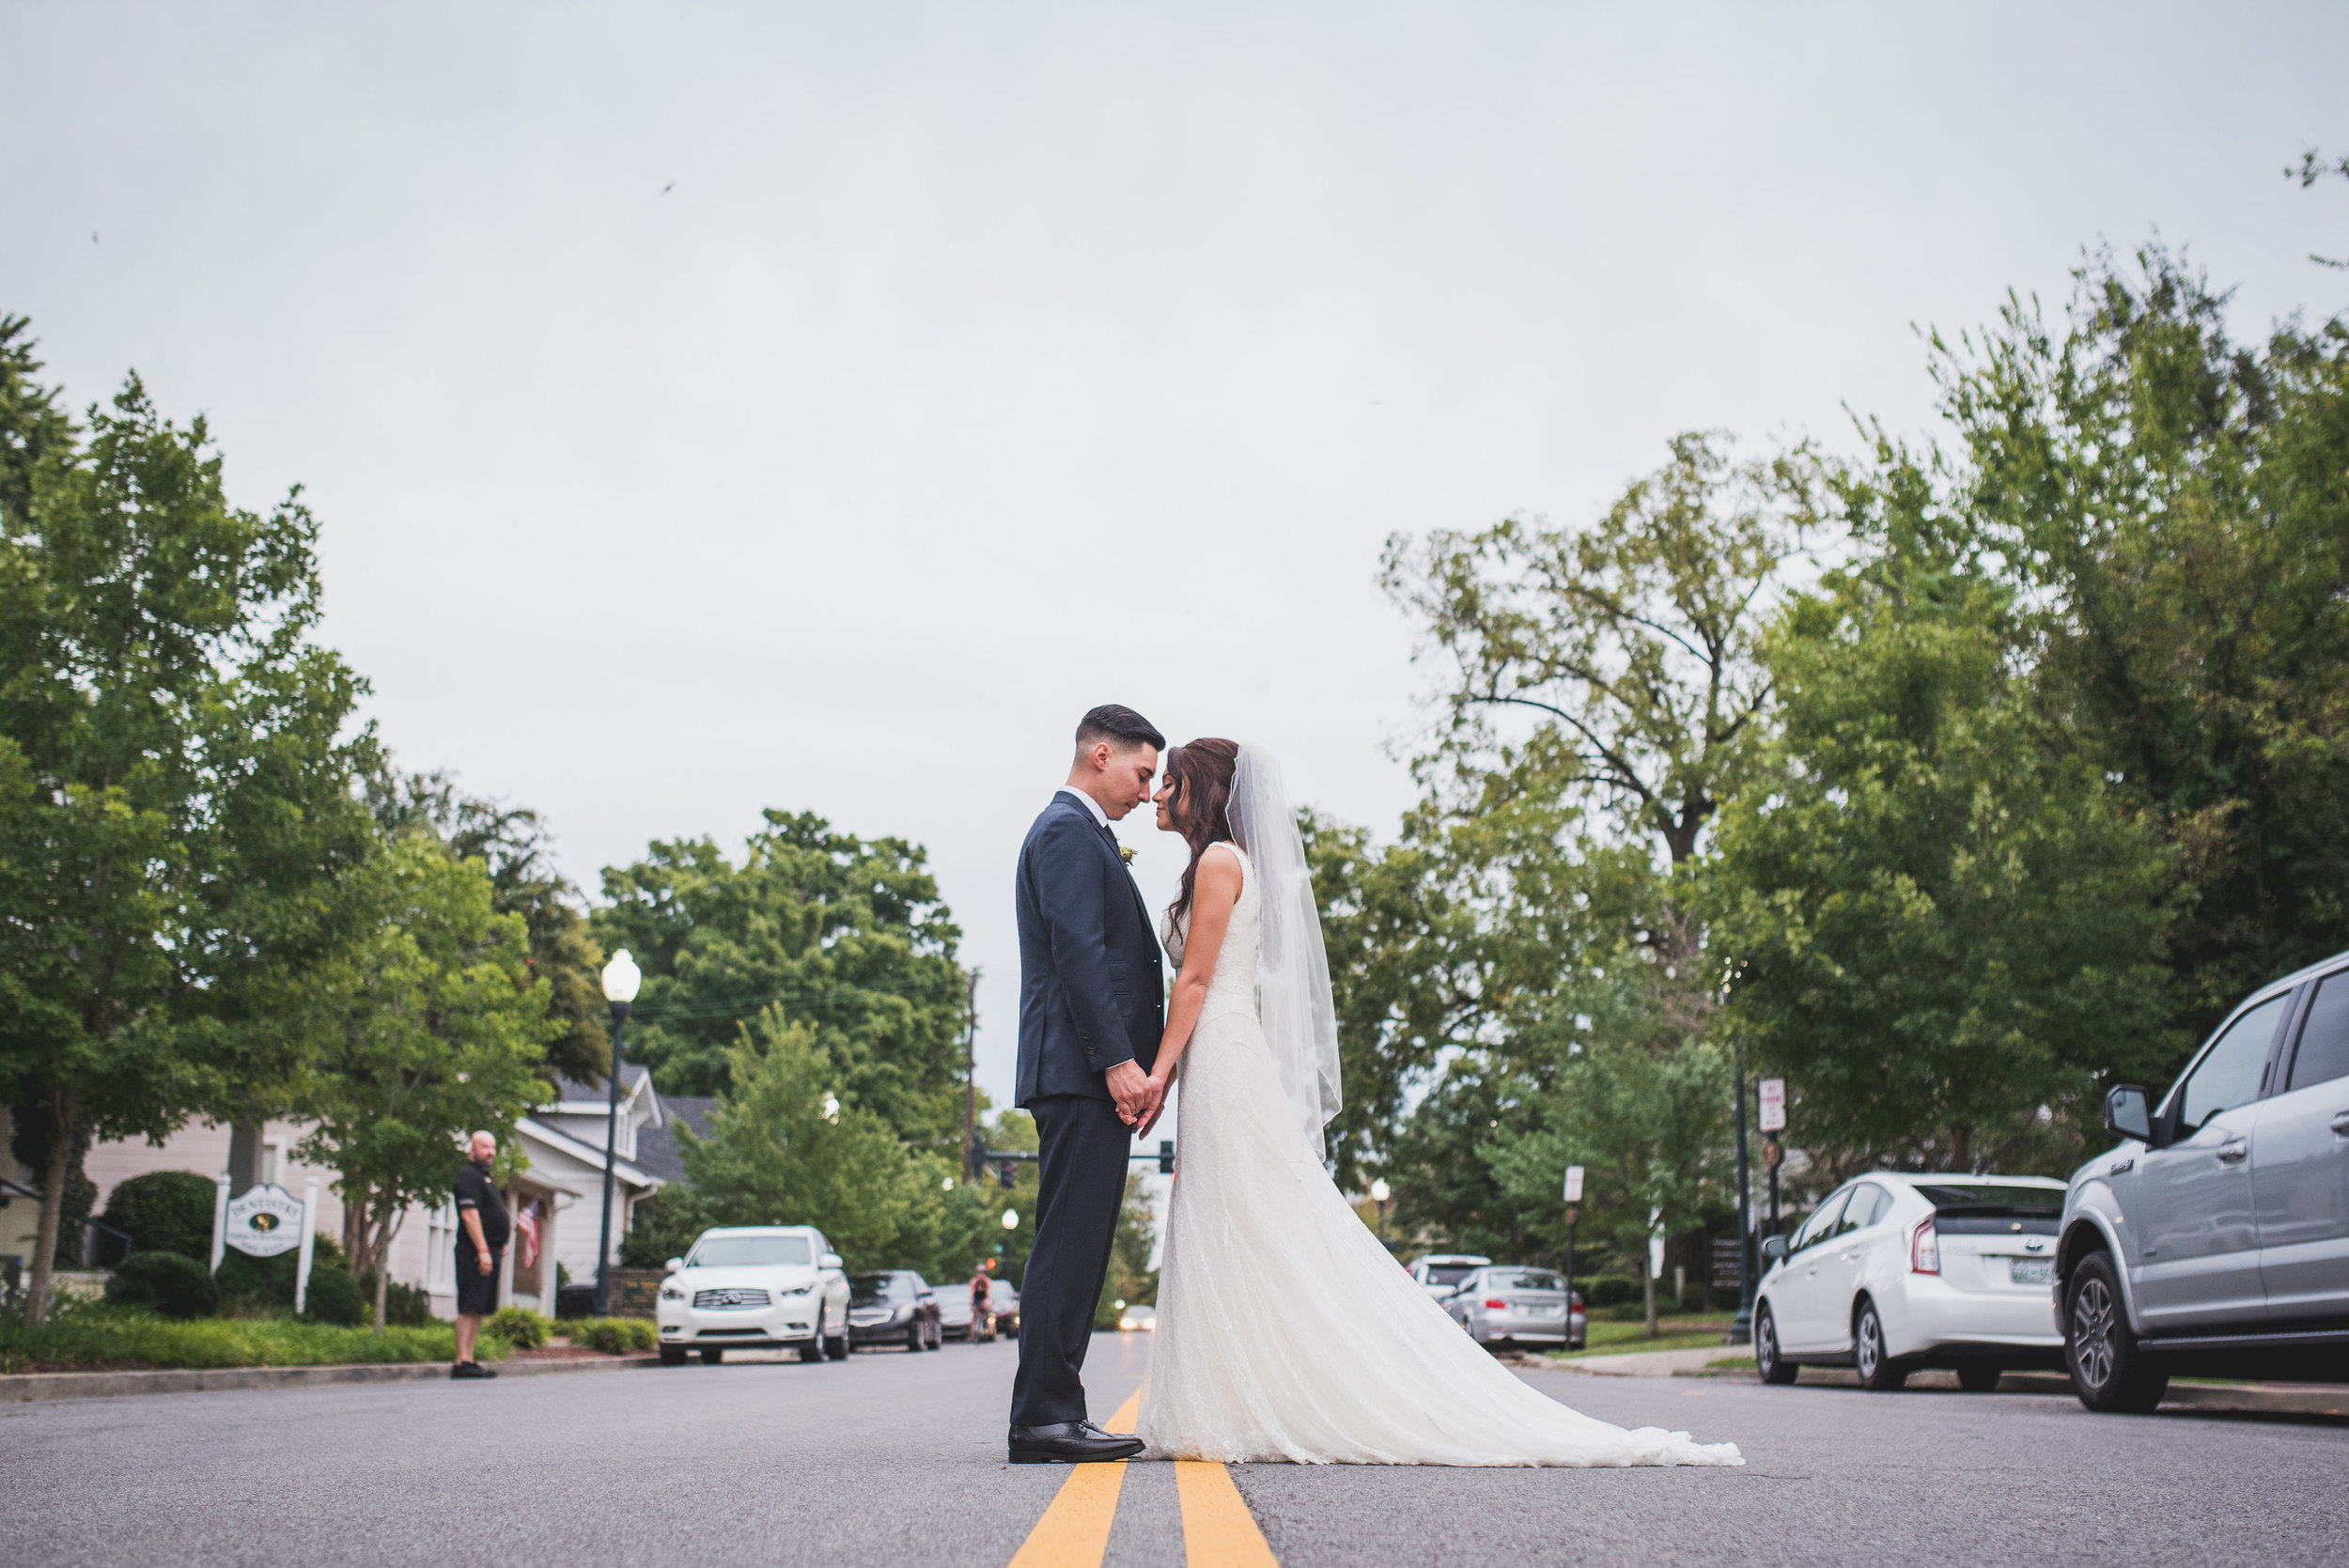 Nashville-Wedding-Photographer-CJsoffthesquare 4.jpg